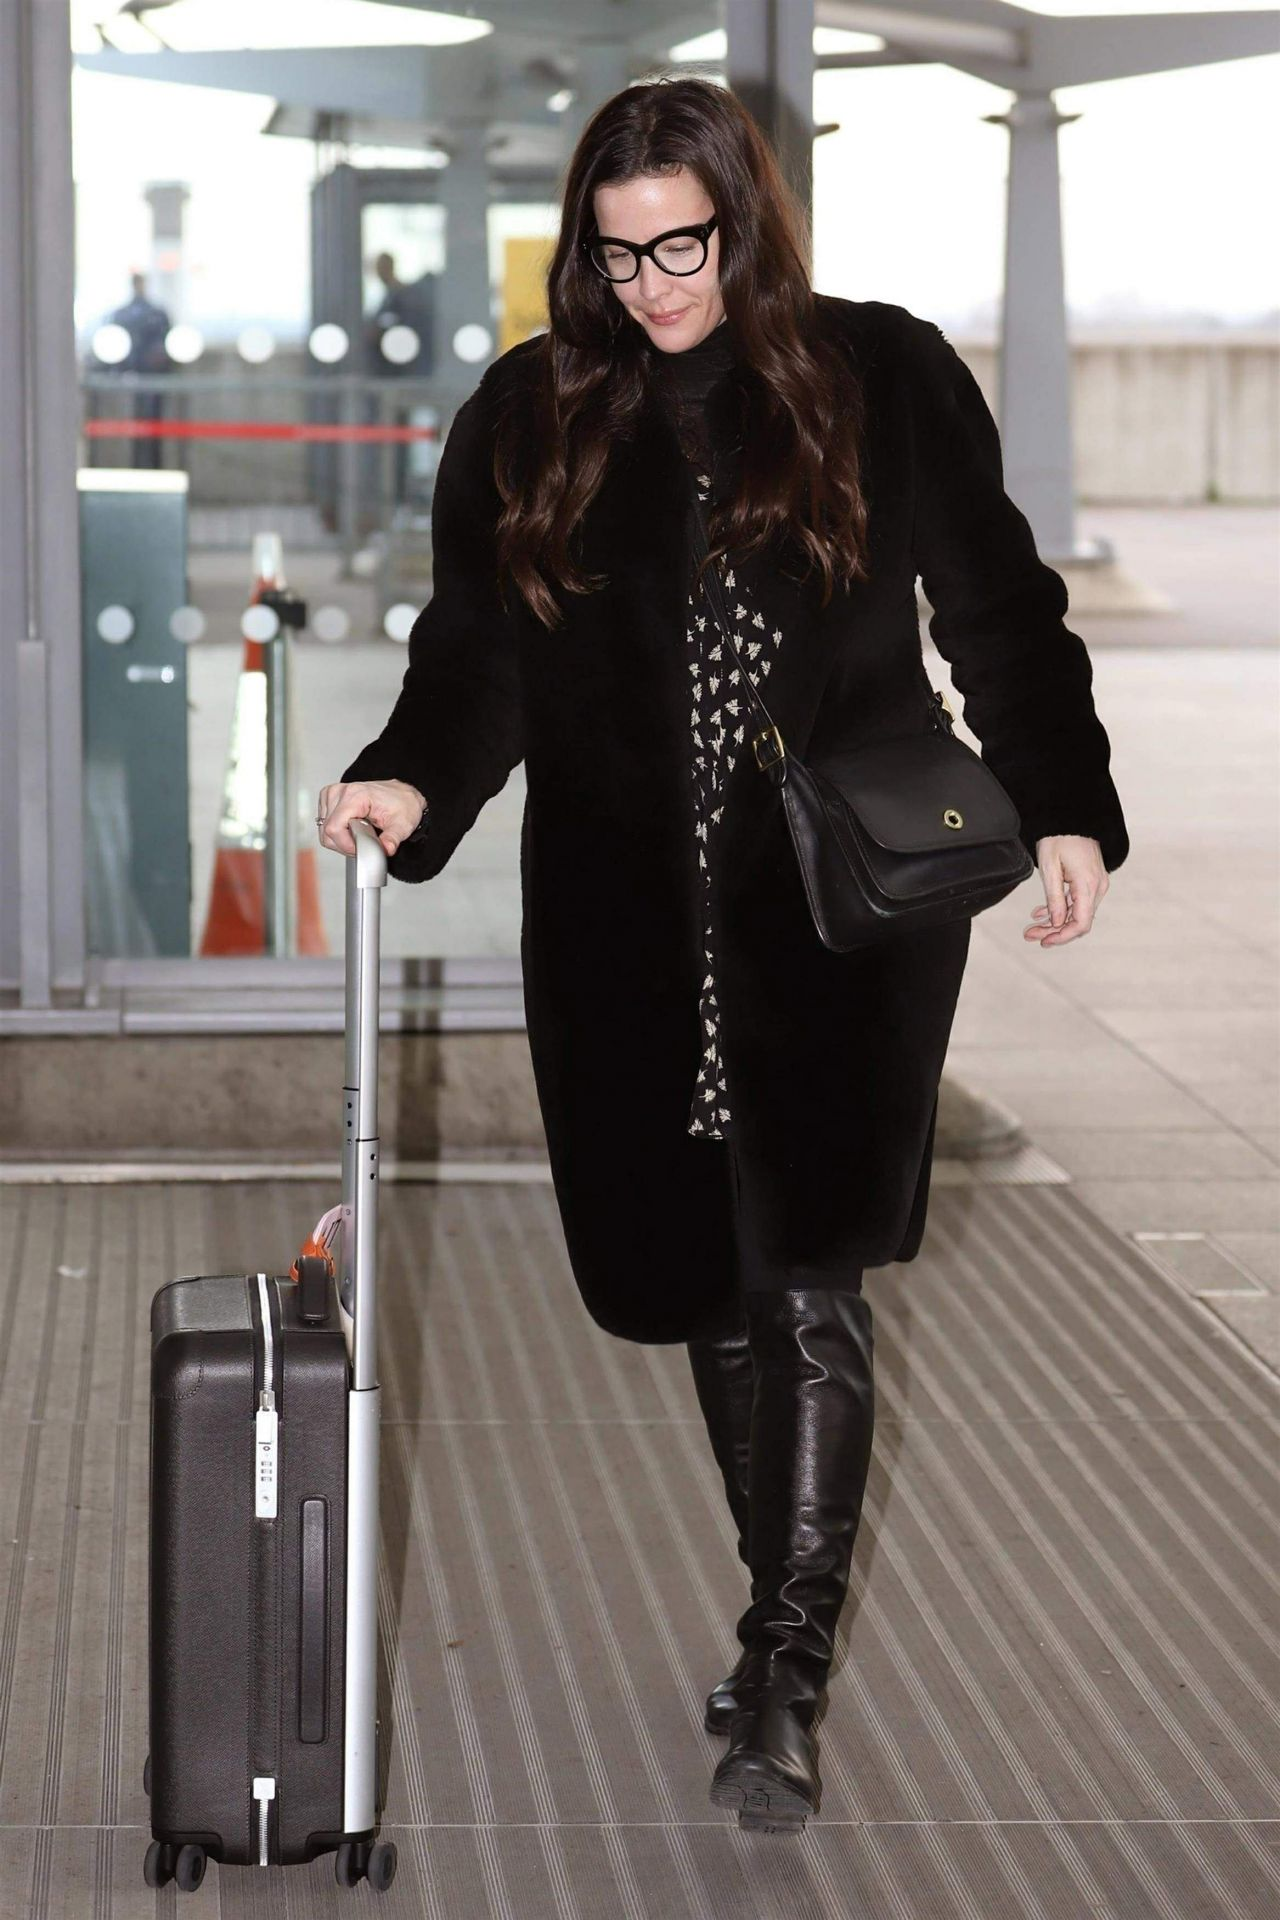 liv tyler in travel outfit